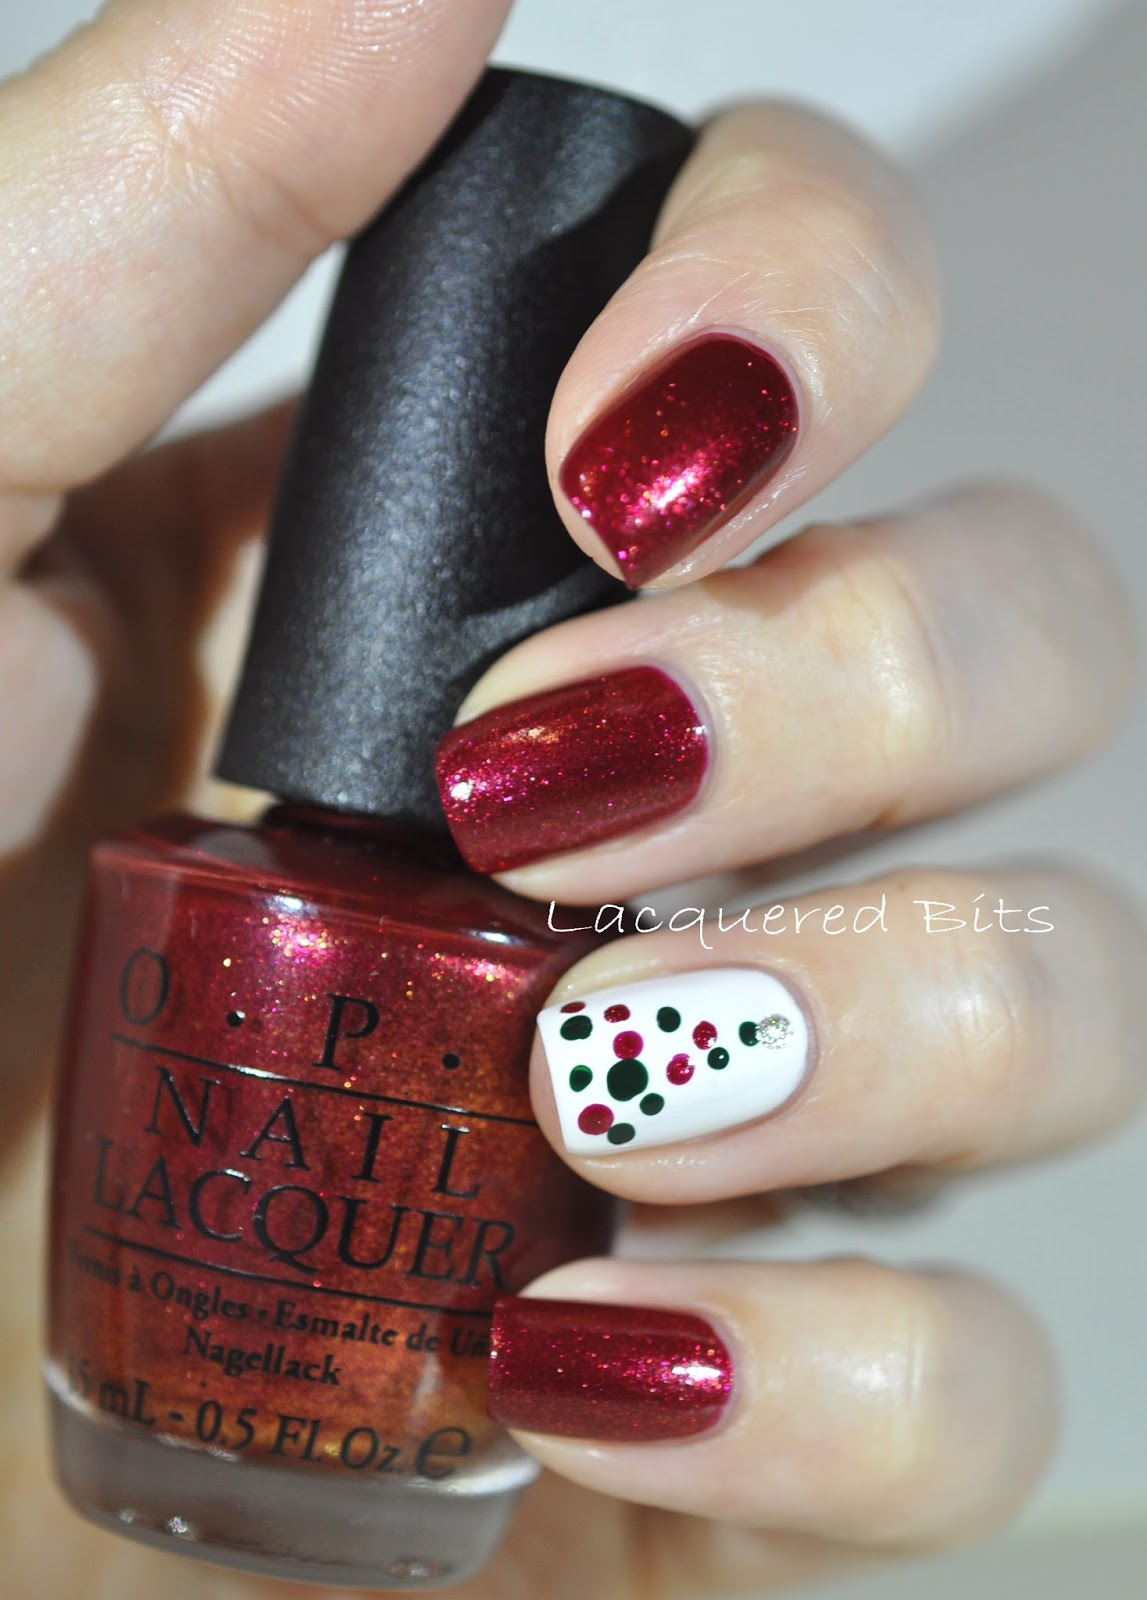 Accent Nail - Lacquered Bits